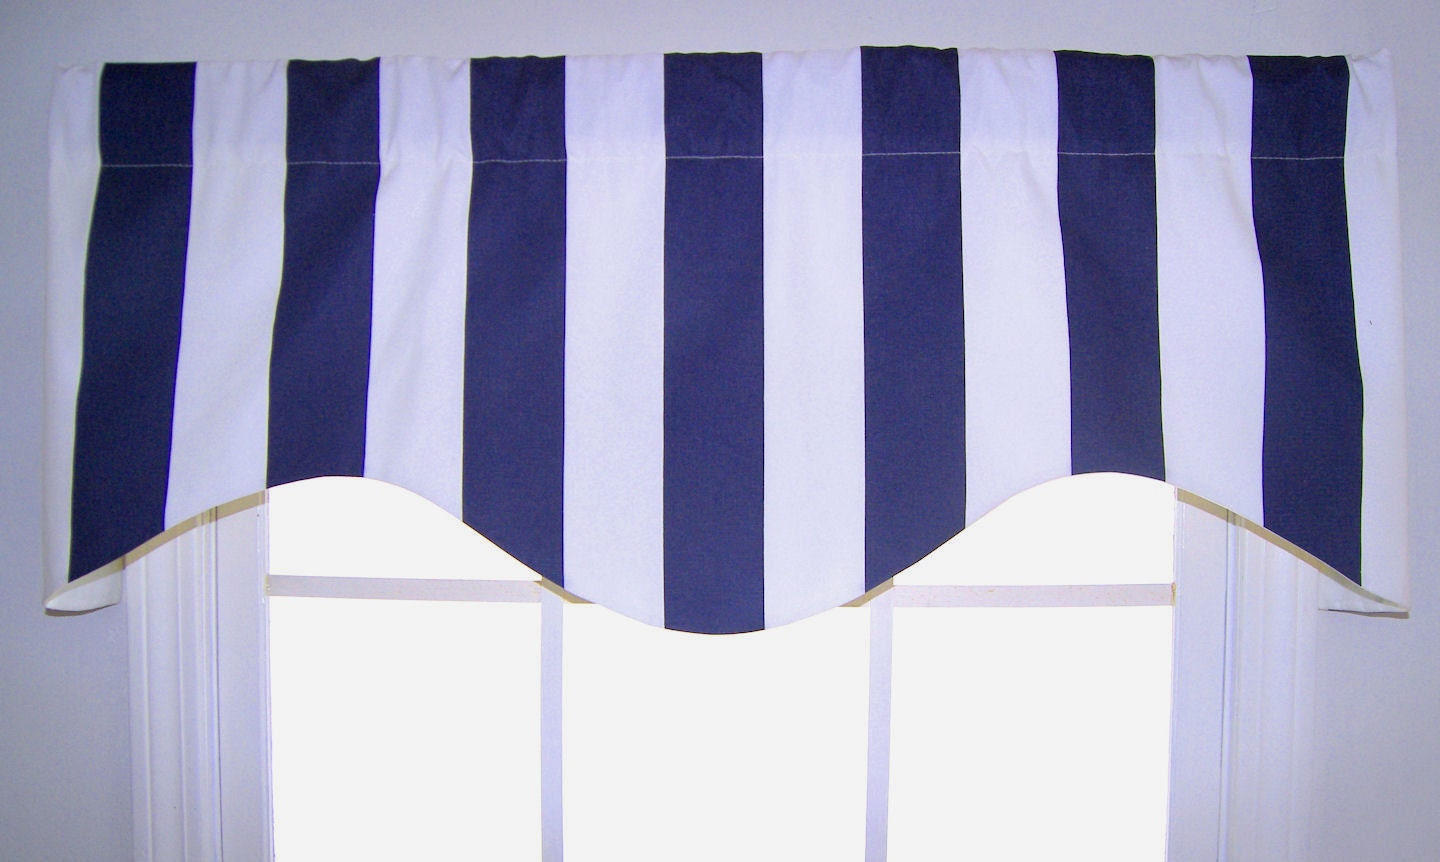 Awning Striped Shaped Valance In Navy